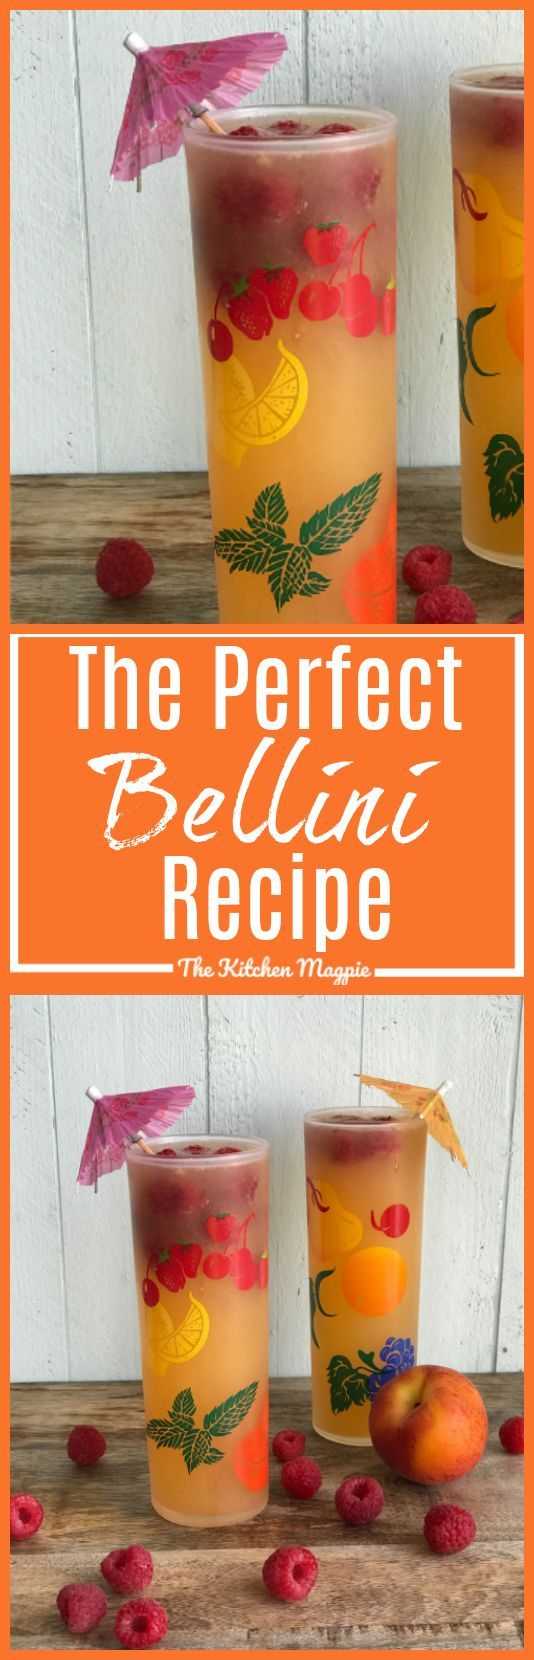 how to make the perfect bellini